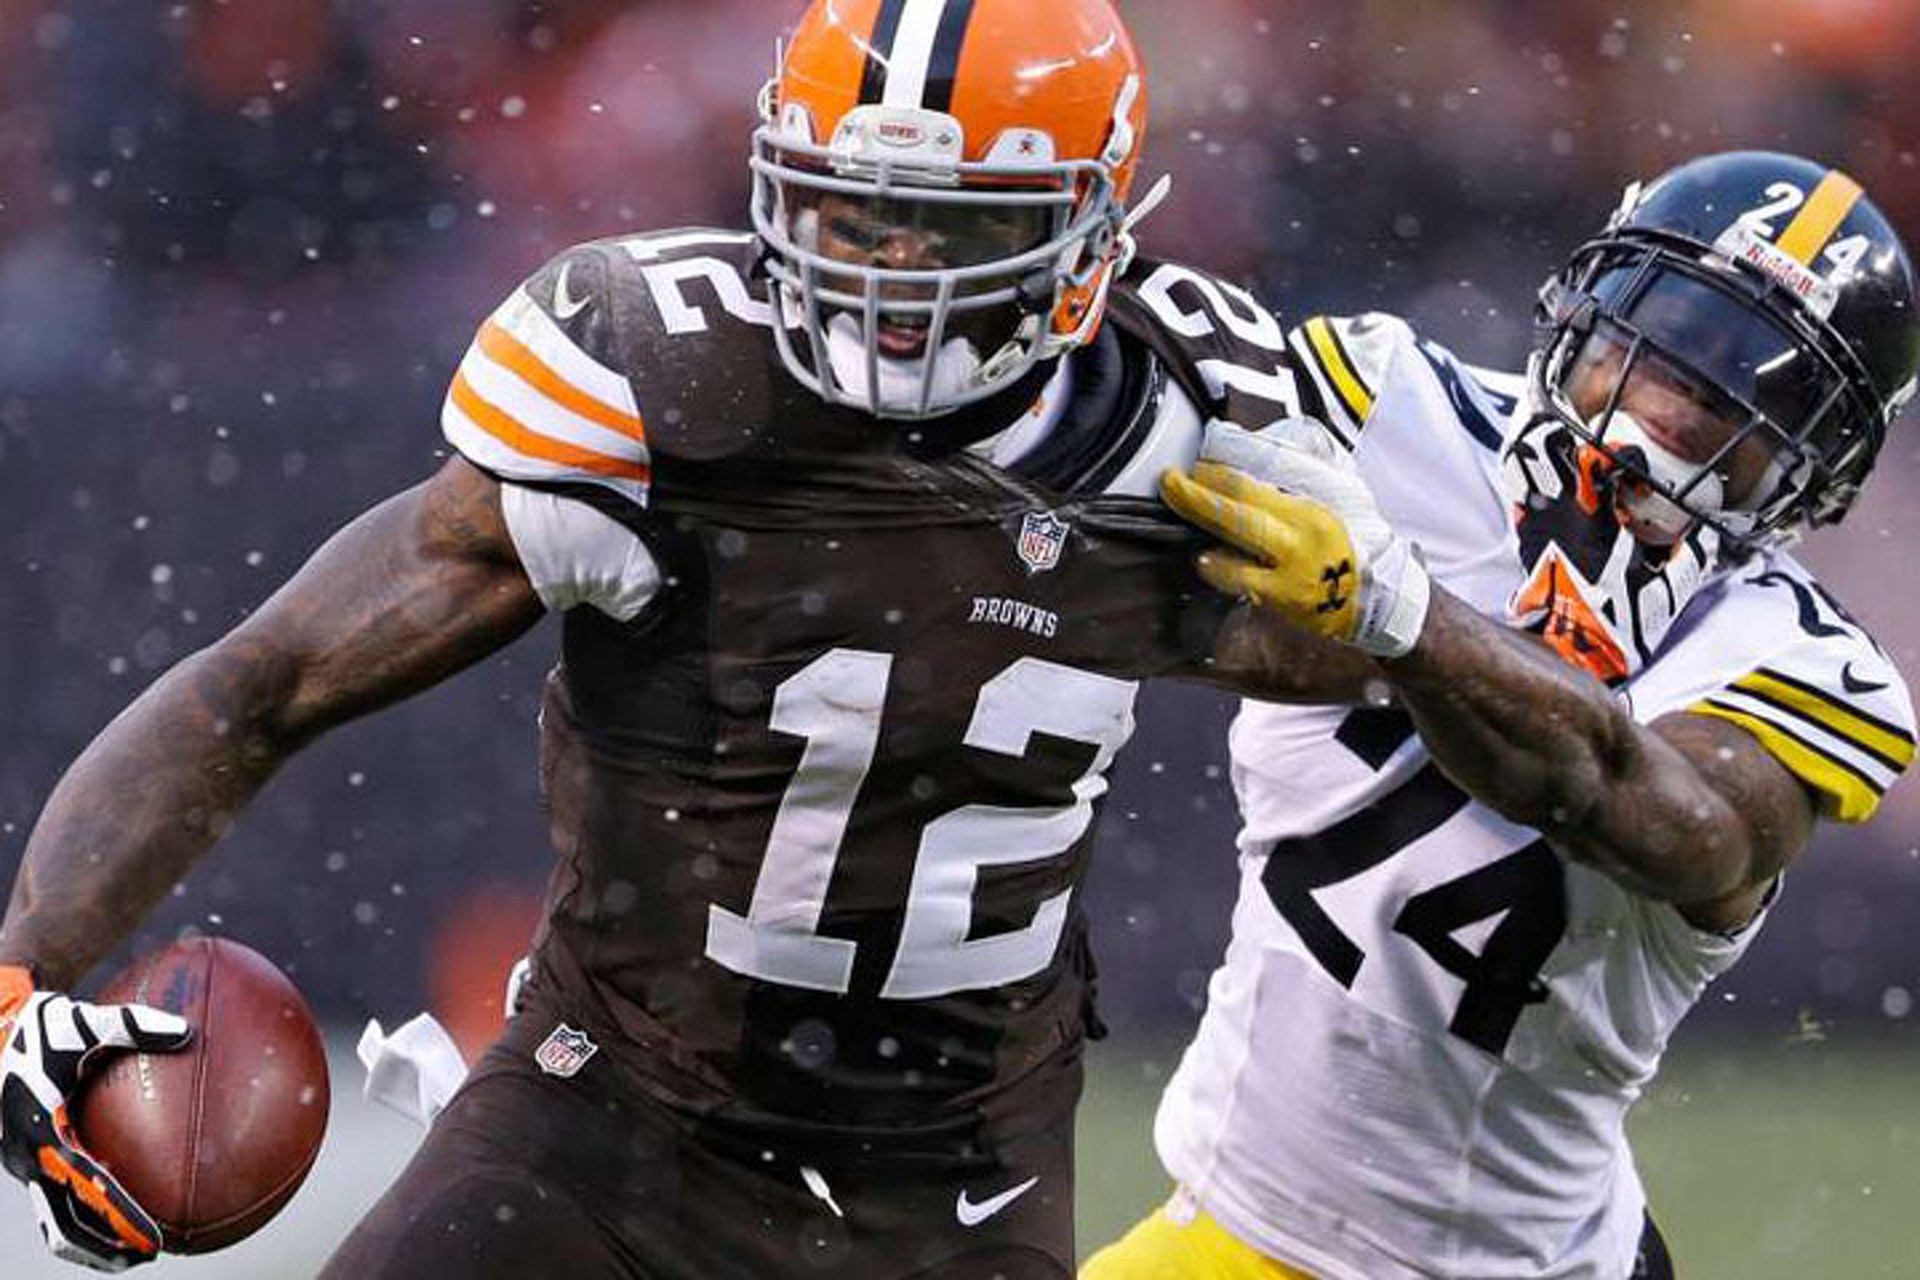 Browns Receiver Josh Gordon Gets Shortened Suspension, But Still Loves Selling Cars